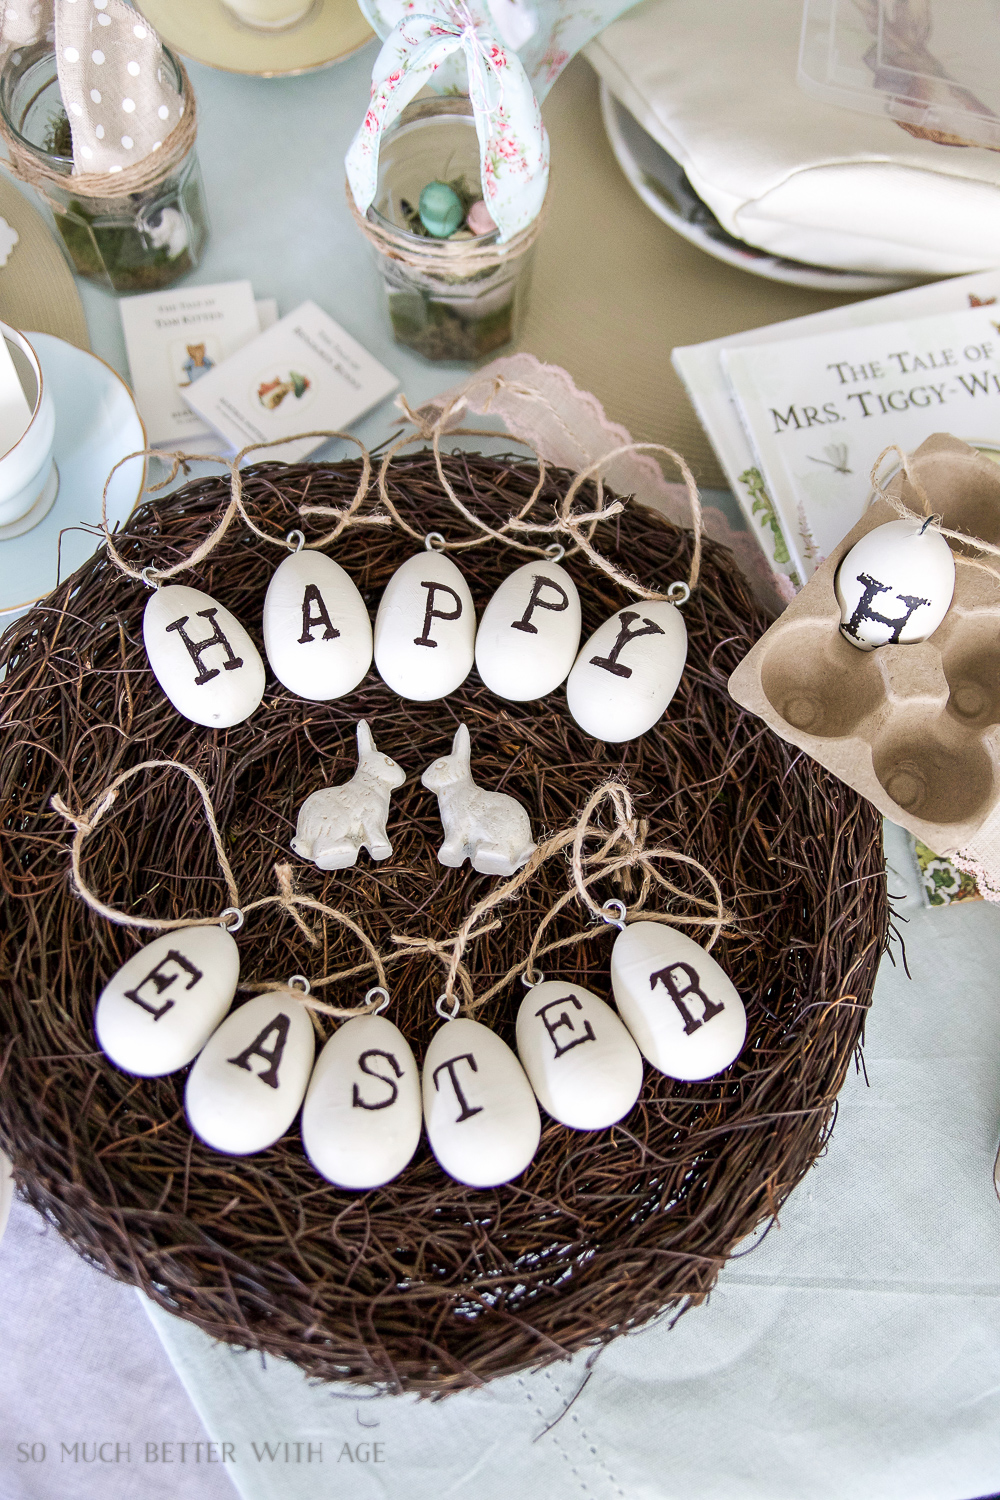 12 Creative Easter Decorating Ideas/Happy Easter egg ornaments - So Much Better With Age